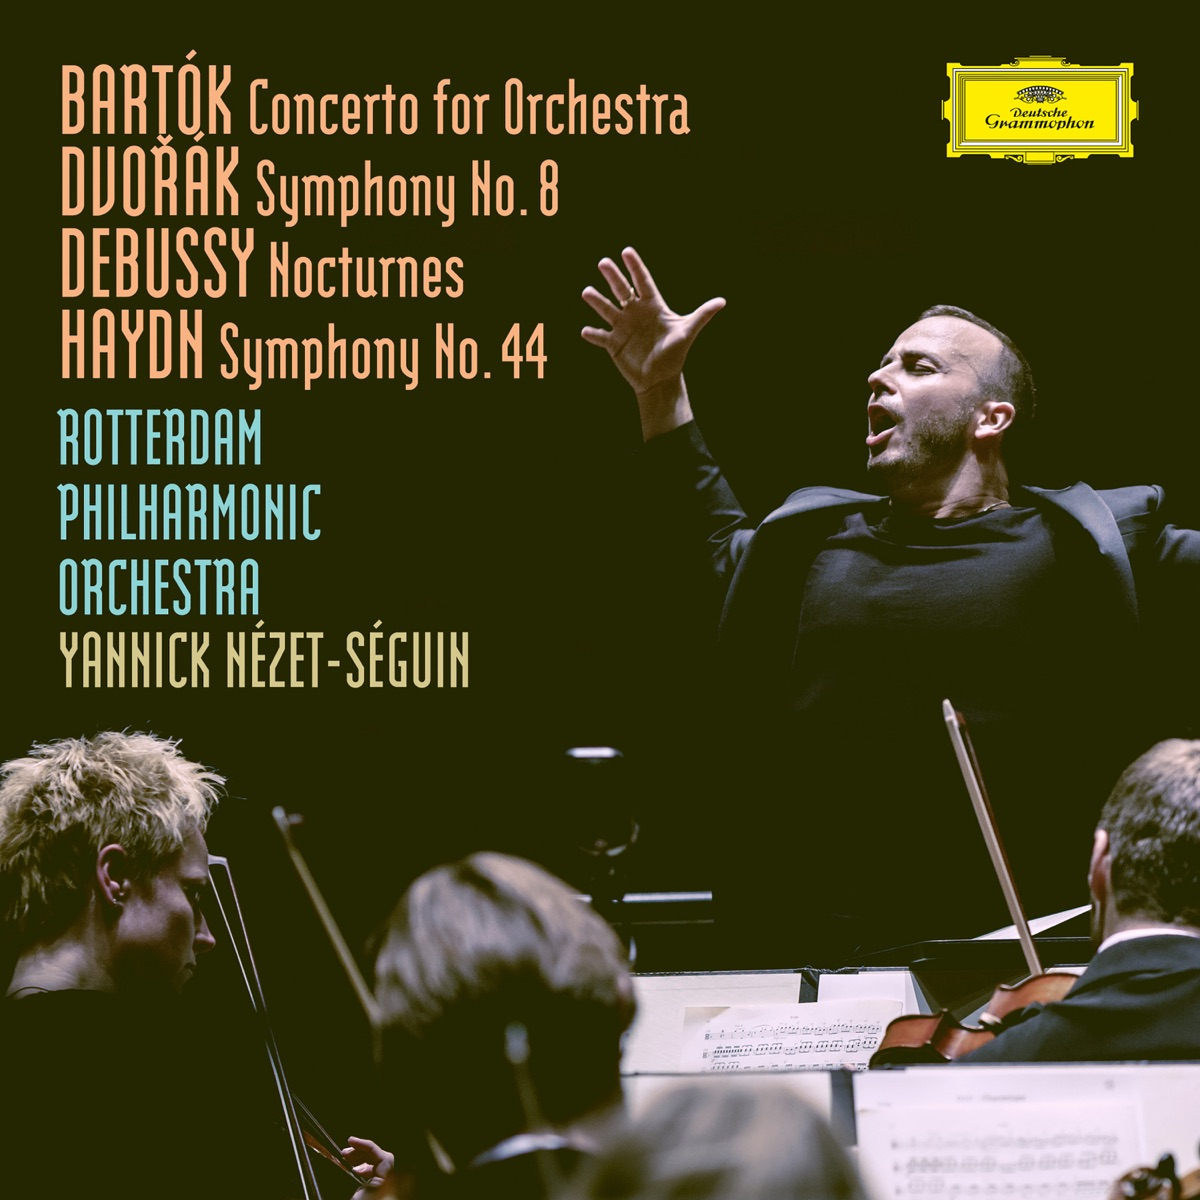 Bartók Concerto For Orchestra BB 123 Sz116  Dvorák Symphony No 8 in G Major Op 88 B163  Debussy Nocturnes L 91  Haydn Symphony No 44 in E Minor HobI44 -Mourning Rotterdam Philharmonic Orchestra Yannick Nézet-Séguin  Collegium Vocale Gent CD cover